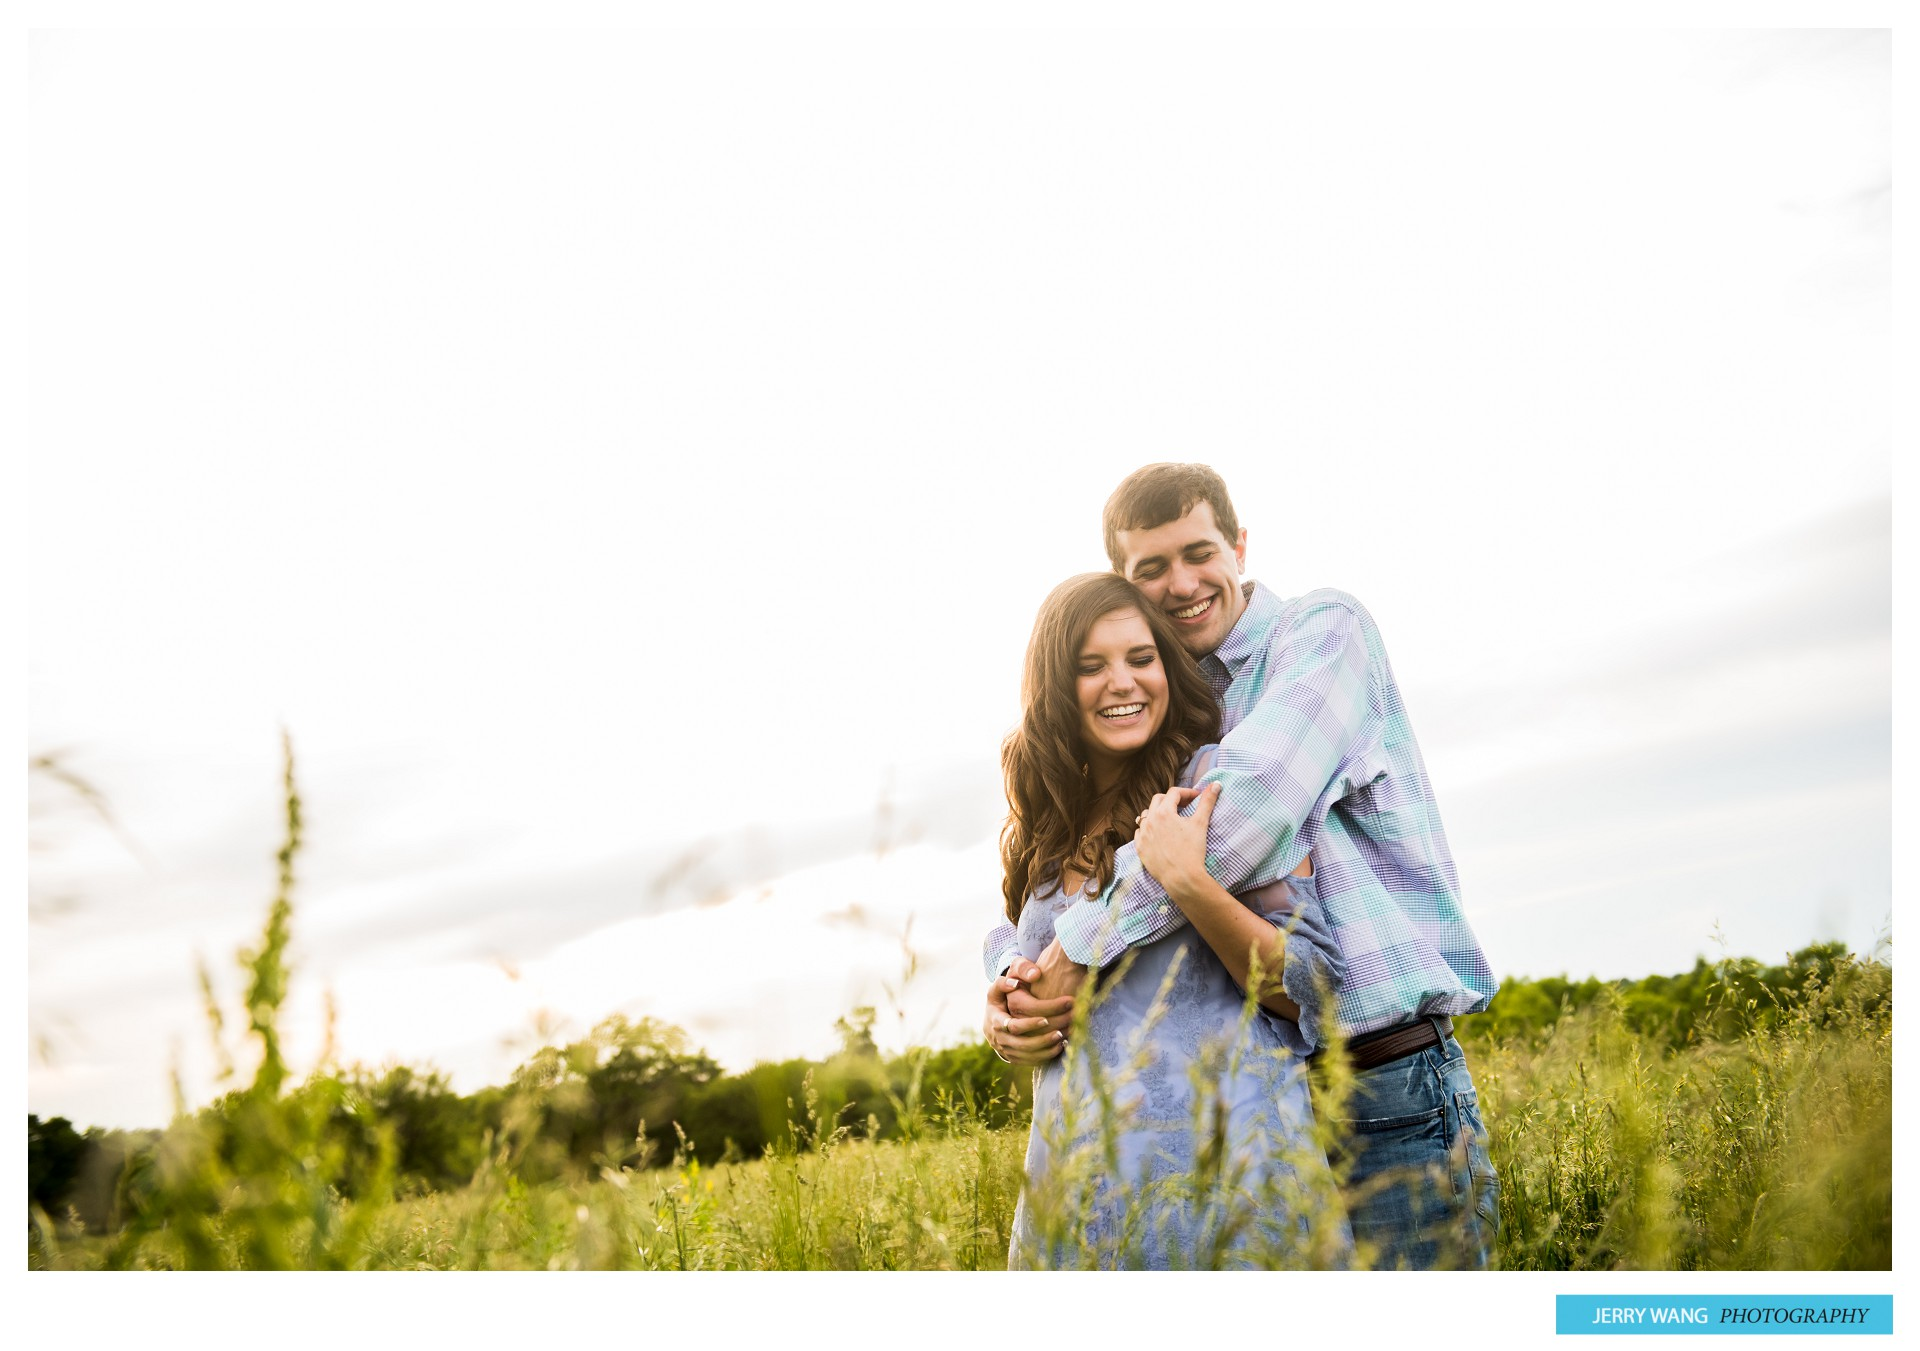 S&B_Spring_Hills_Kansas_Hickory_Creek_Engagement_Session 14